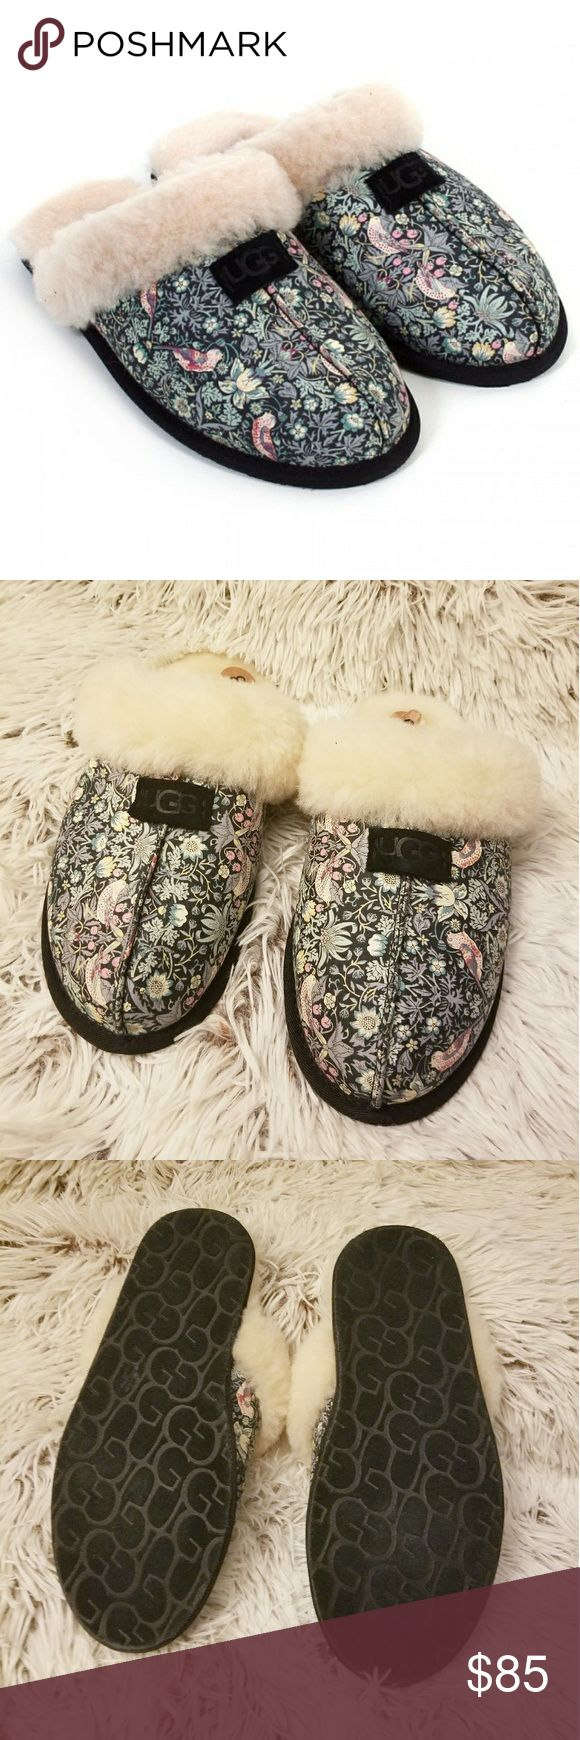 UGG Scuffette Liberty Floral Slipper RARE sz 8 NWT Ugg australia scuffette liberty sheepskin slipper blush floral - ugg women slippers (black) - ugg women shoe in collaboration with iconic liberty art fabrics, ugg presents the scuffette slipper adorned with the 'strawberry thief' print. originally designed by william morris in 1883, strawberry thief is a classic print that incorporates ornate birds and delicate blossoms.   Size 8 NEW WITH TAGS  Perfect gift for you or anyone else on your…